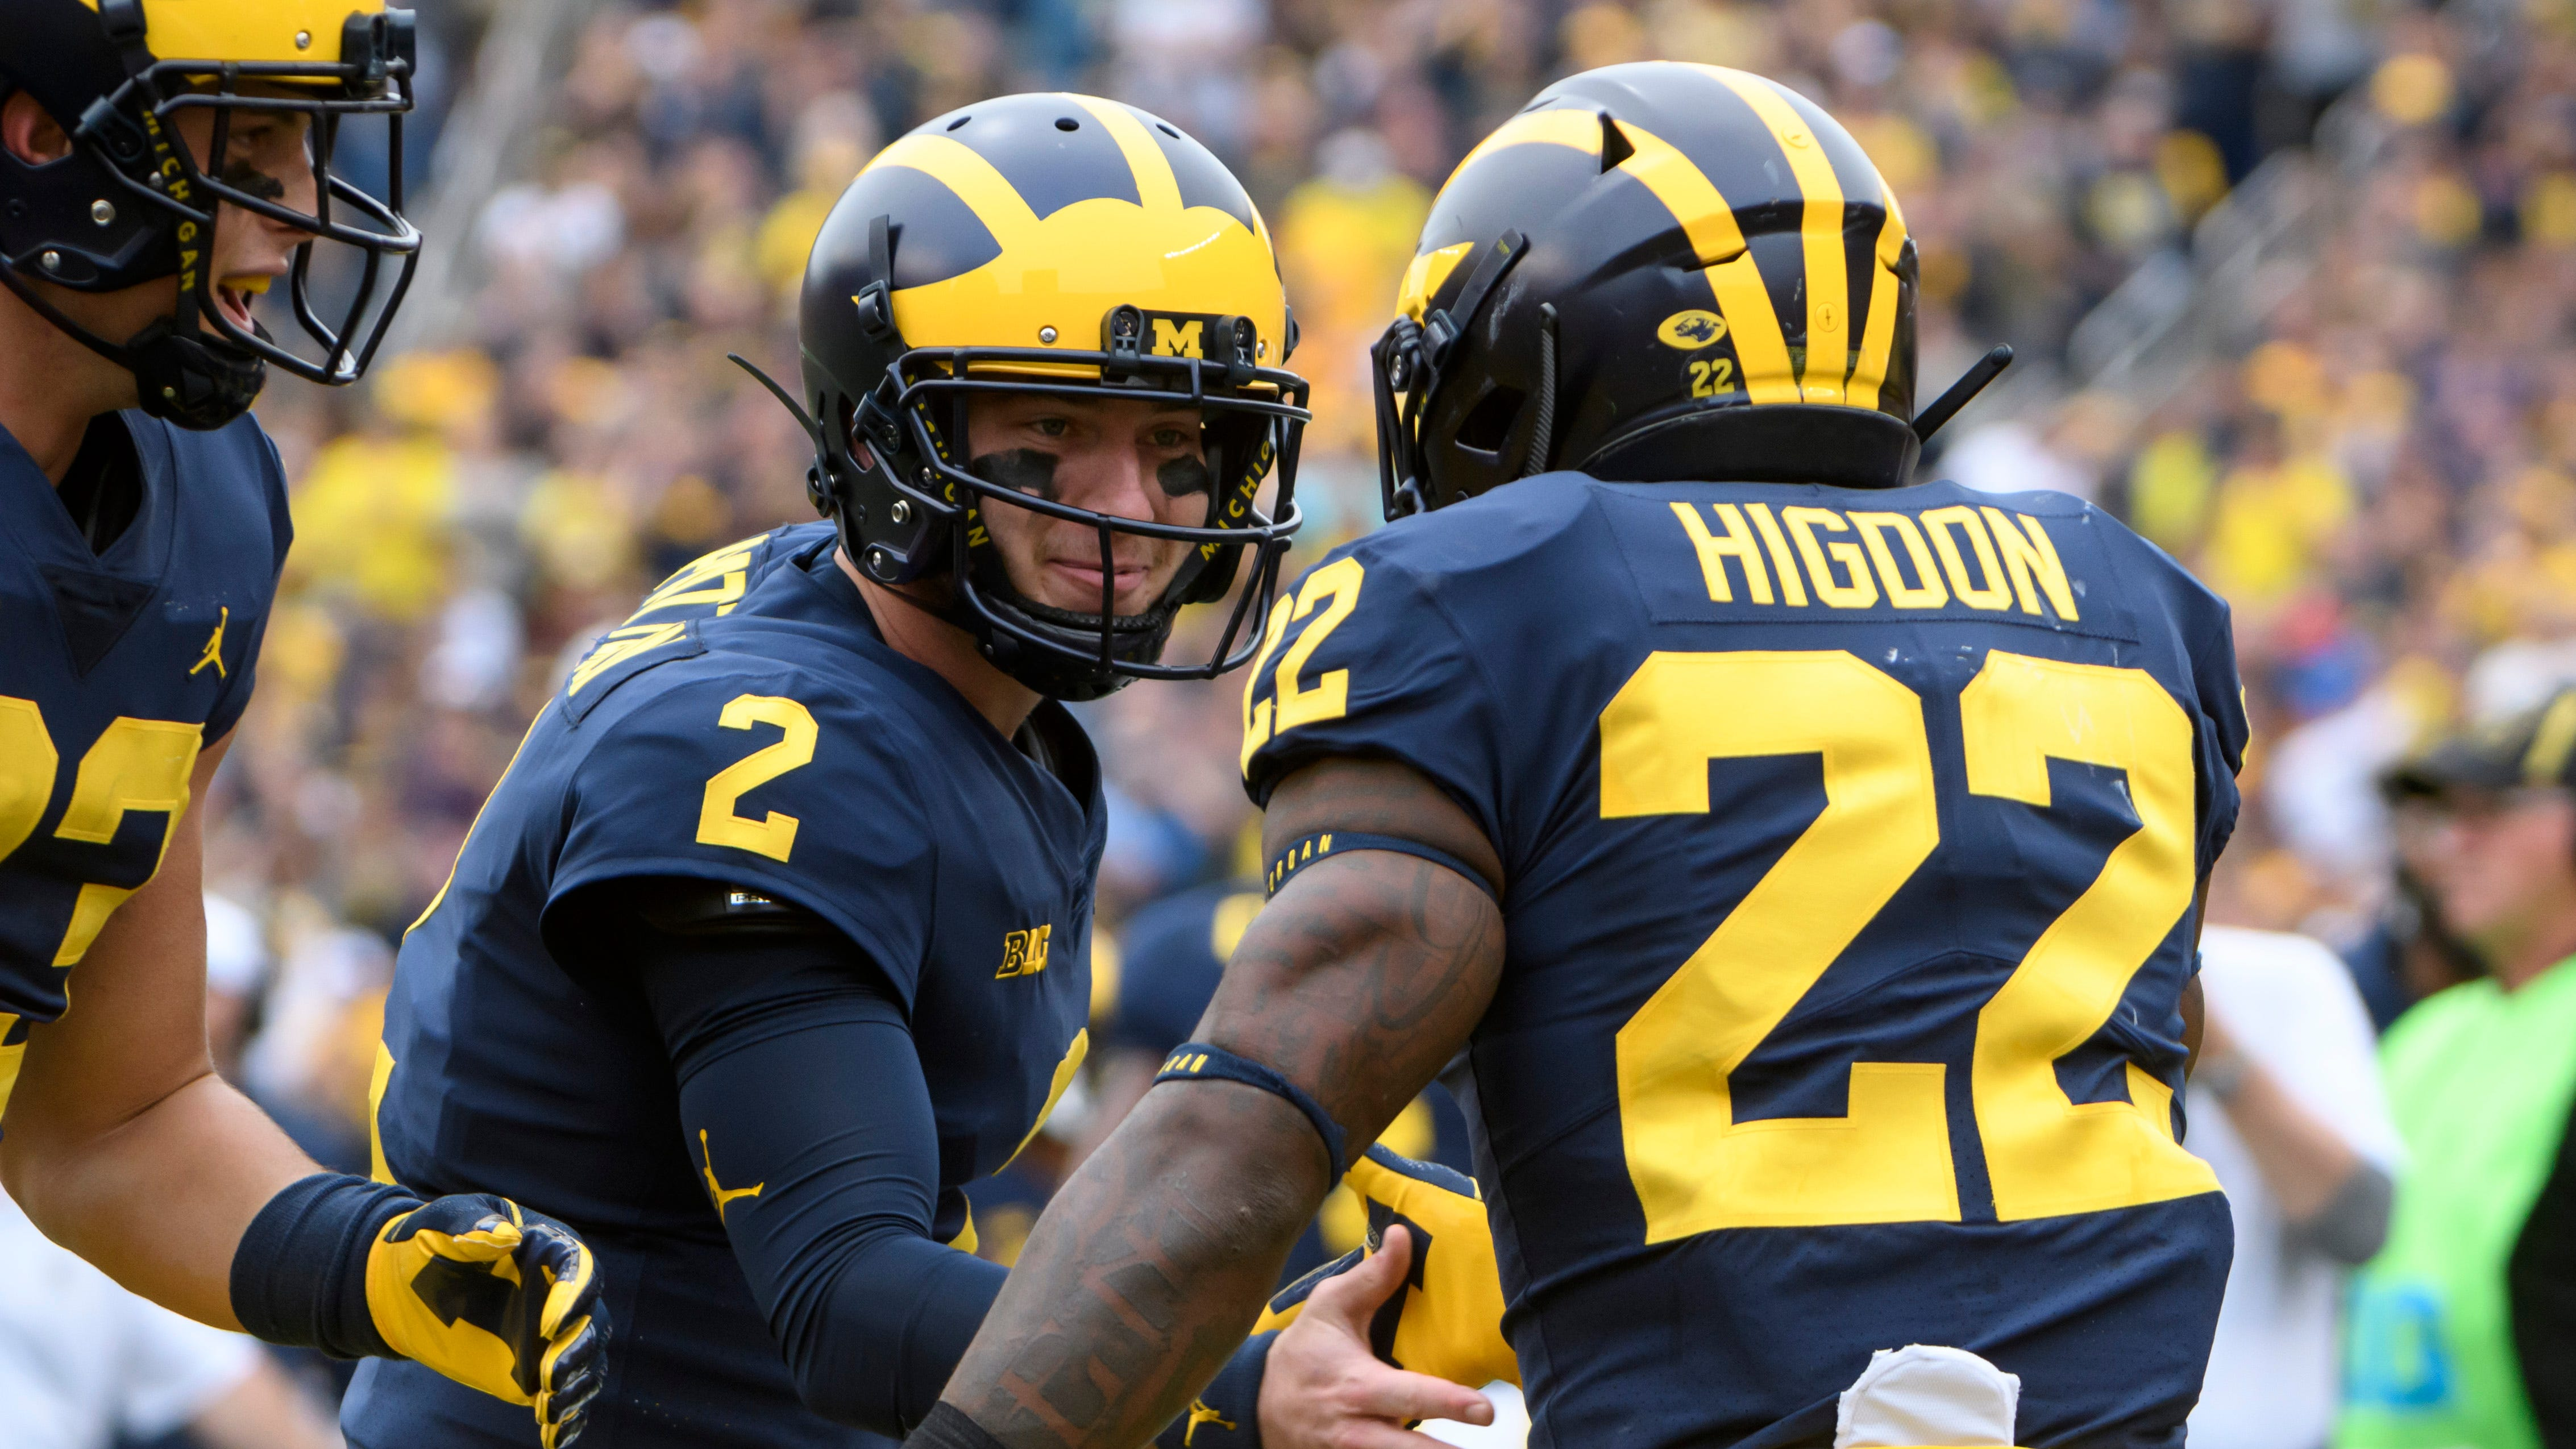 Shea Patterson and Karan Higdon